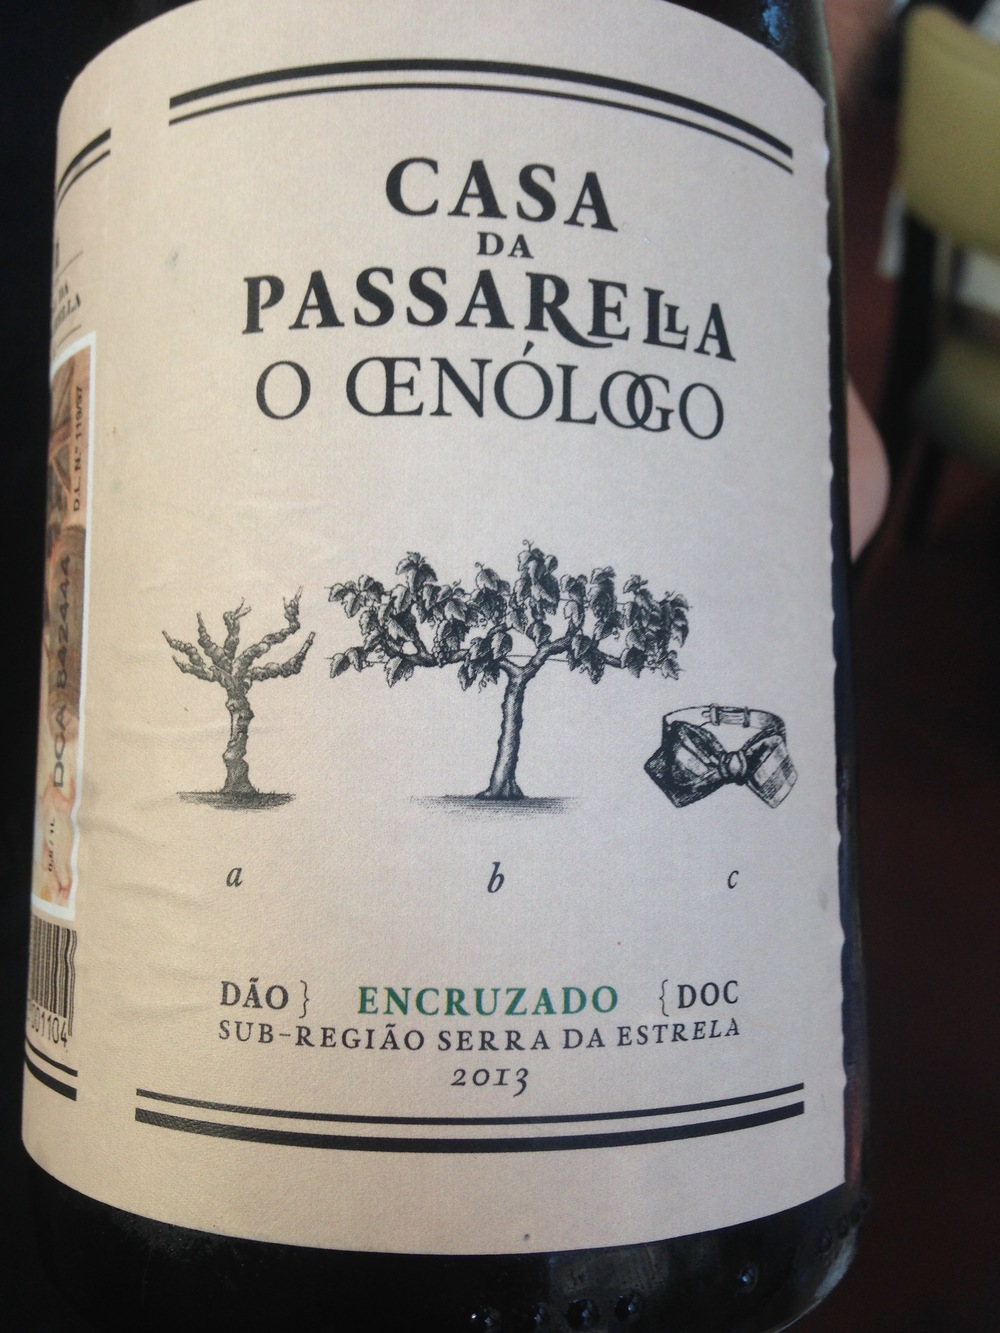 encruzado grape (Dao)